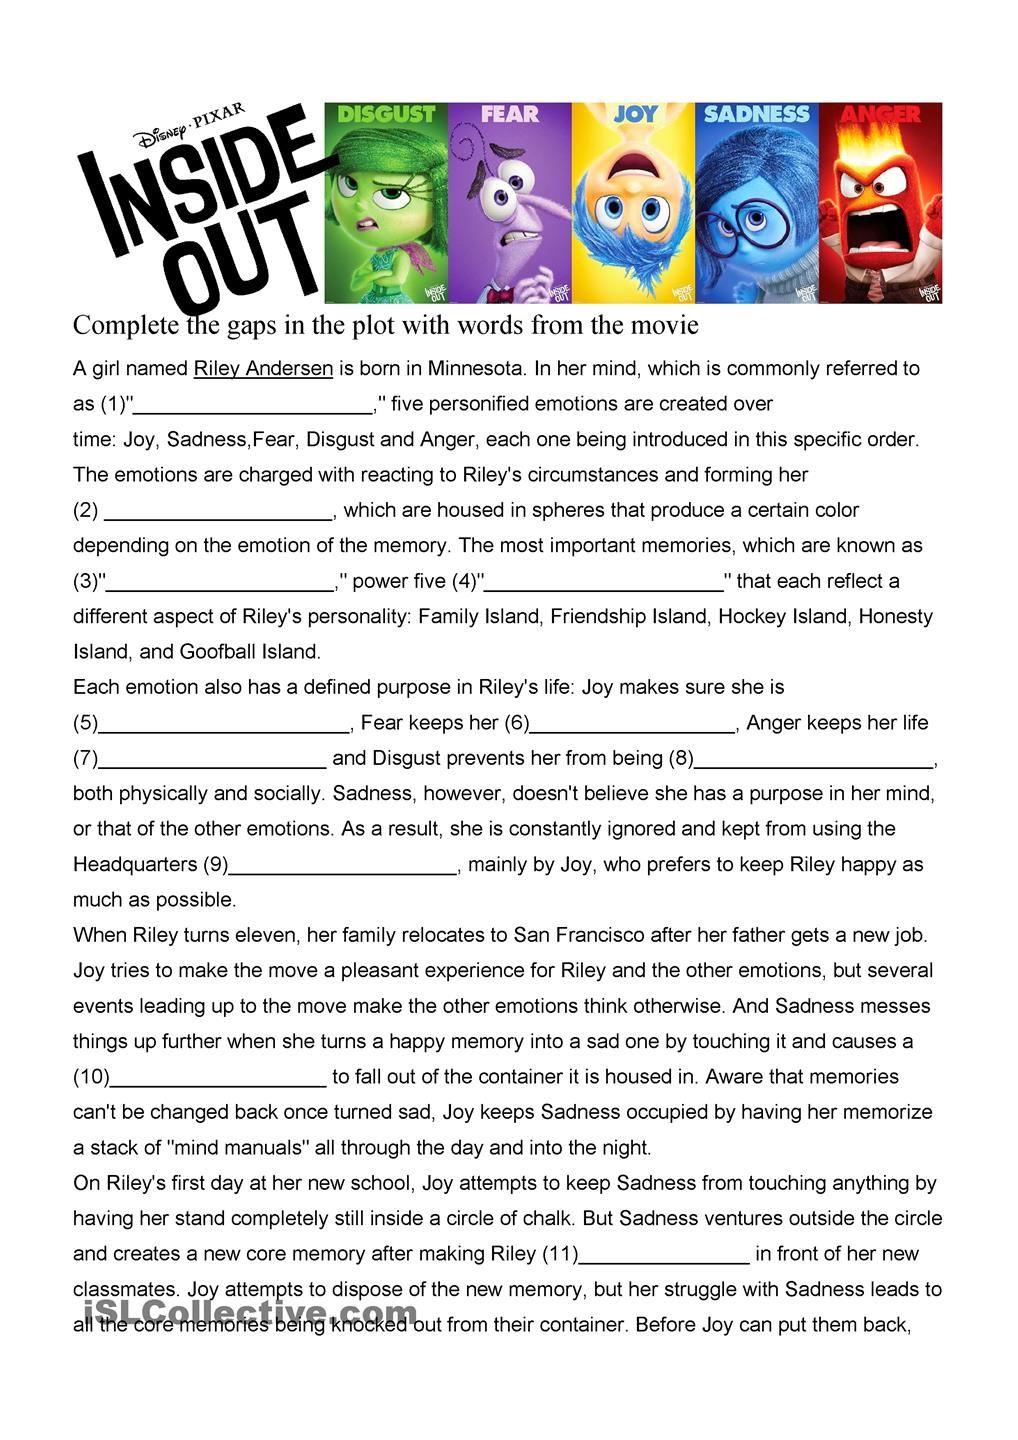 Uncategorized Movie Worksheets inside out movie worksheet in depth b1 tefl lesson ideas b1